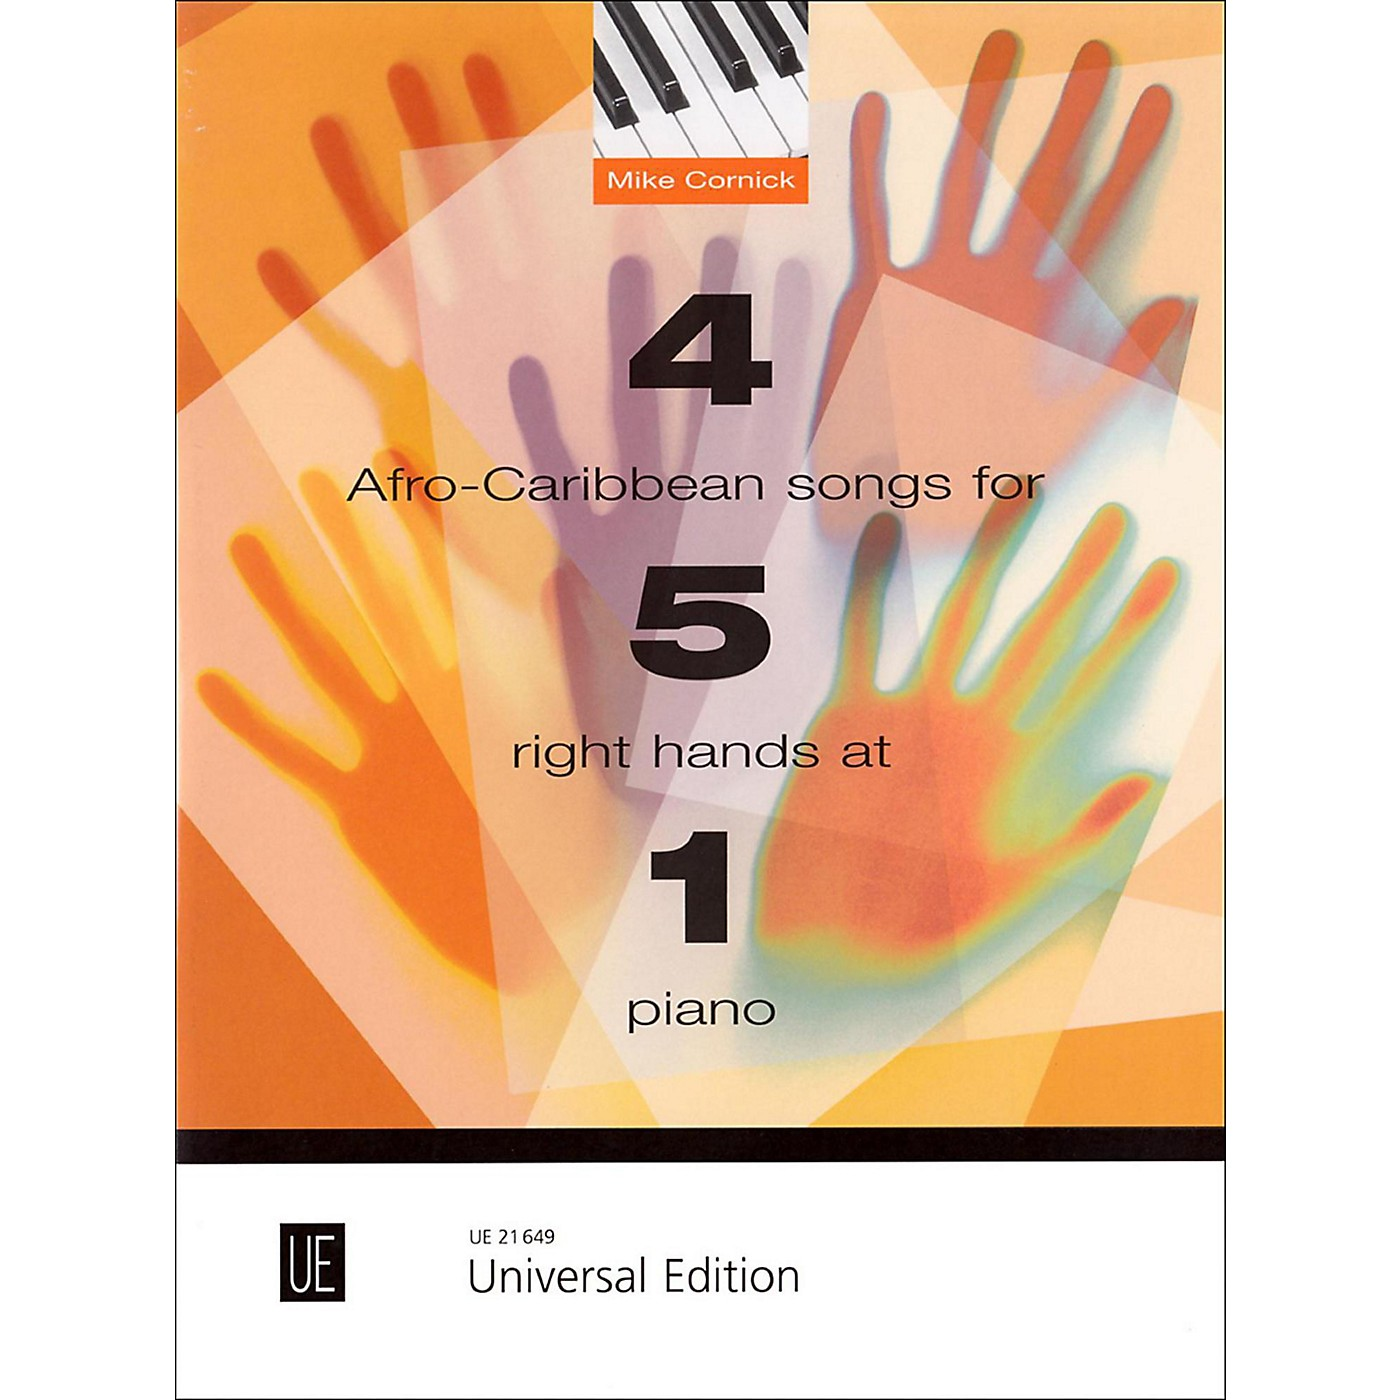 Carl Fischer 4 Afro-Caribbean Songs for 5 Right Hands at 1 Piano Book thumbnail